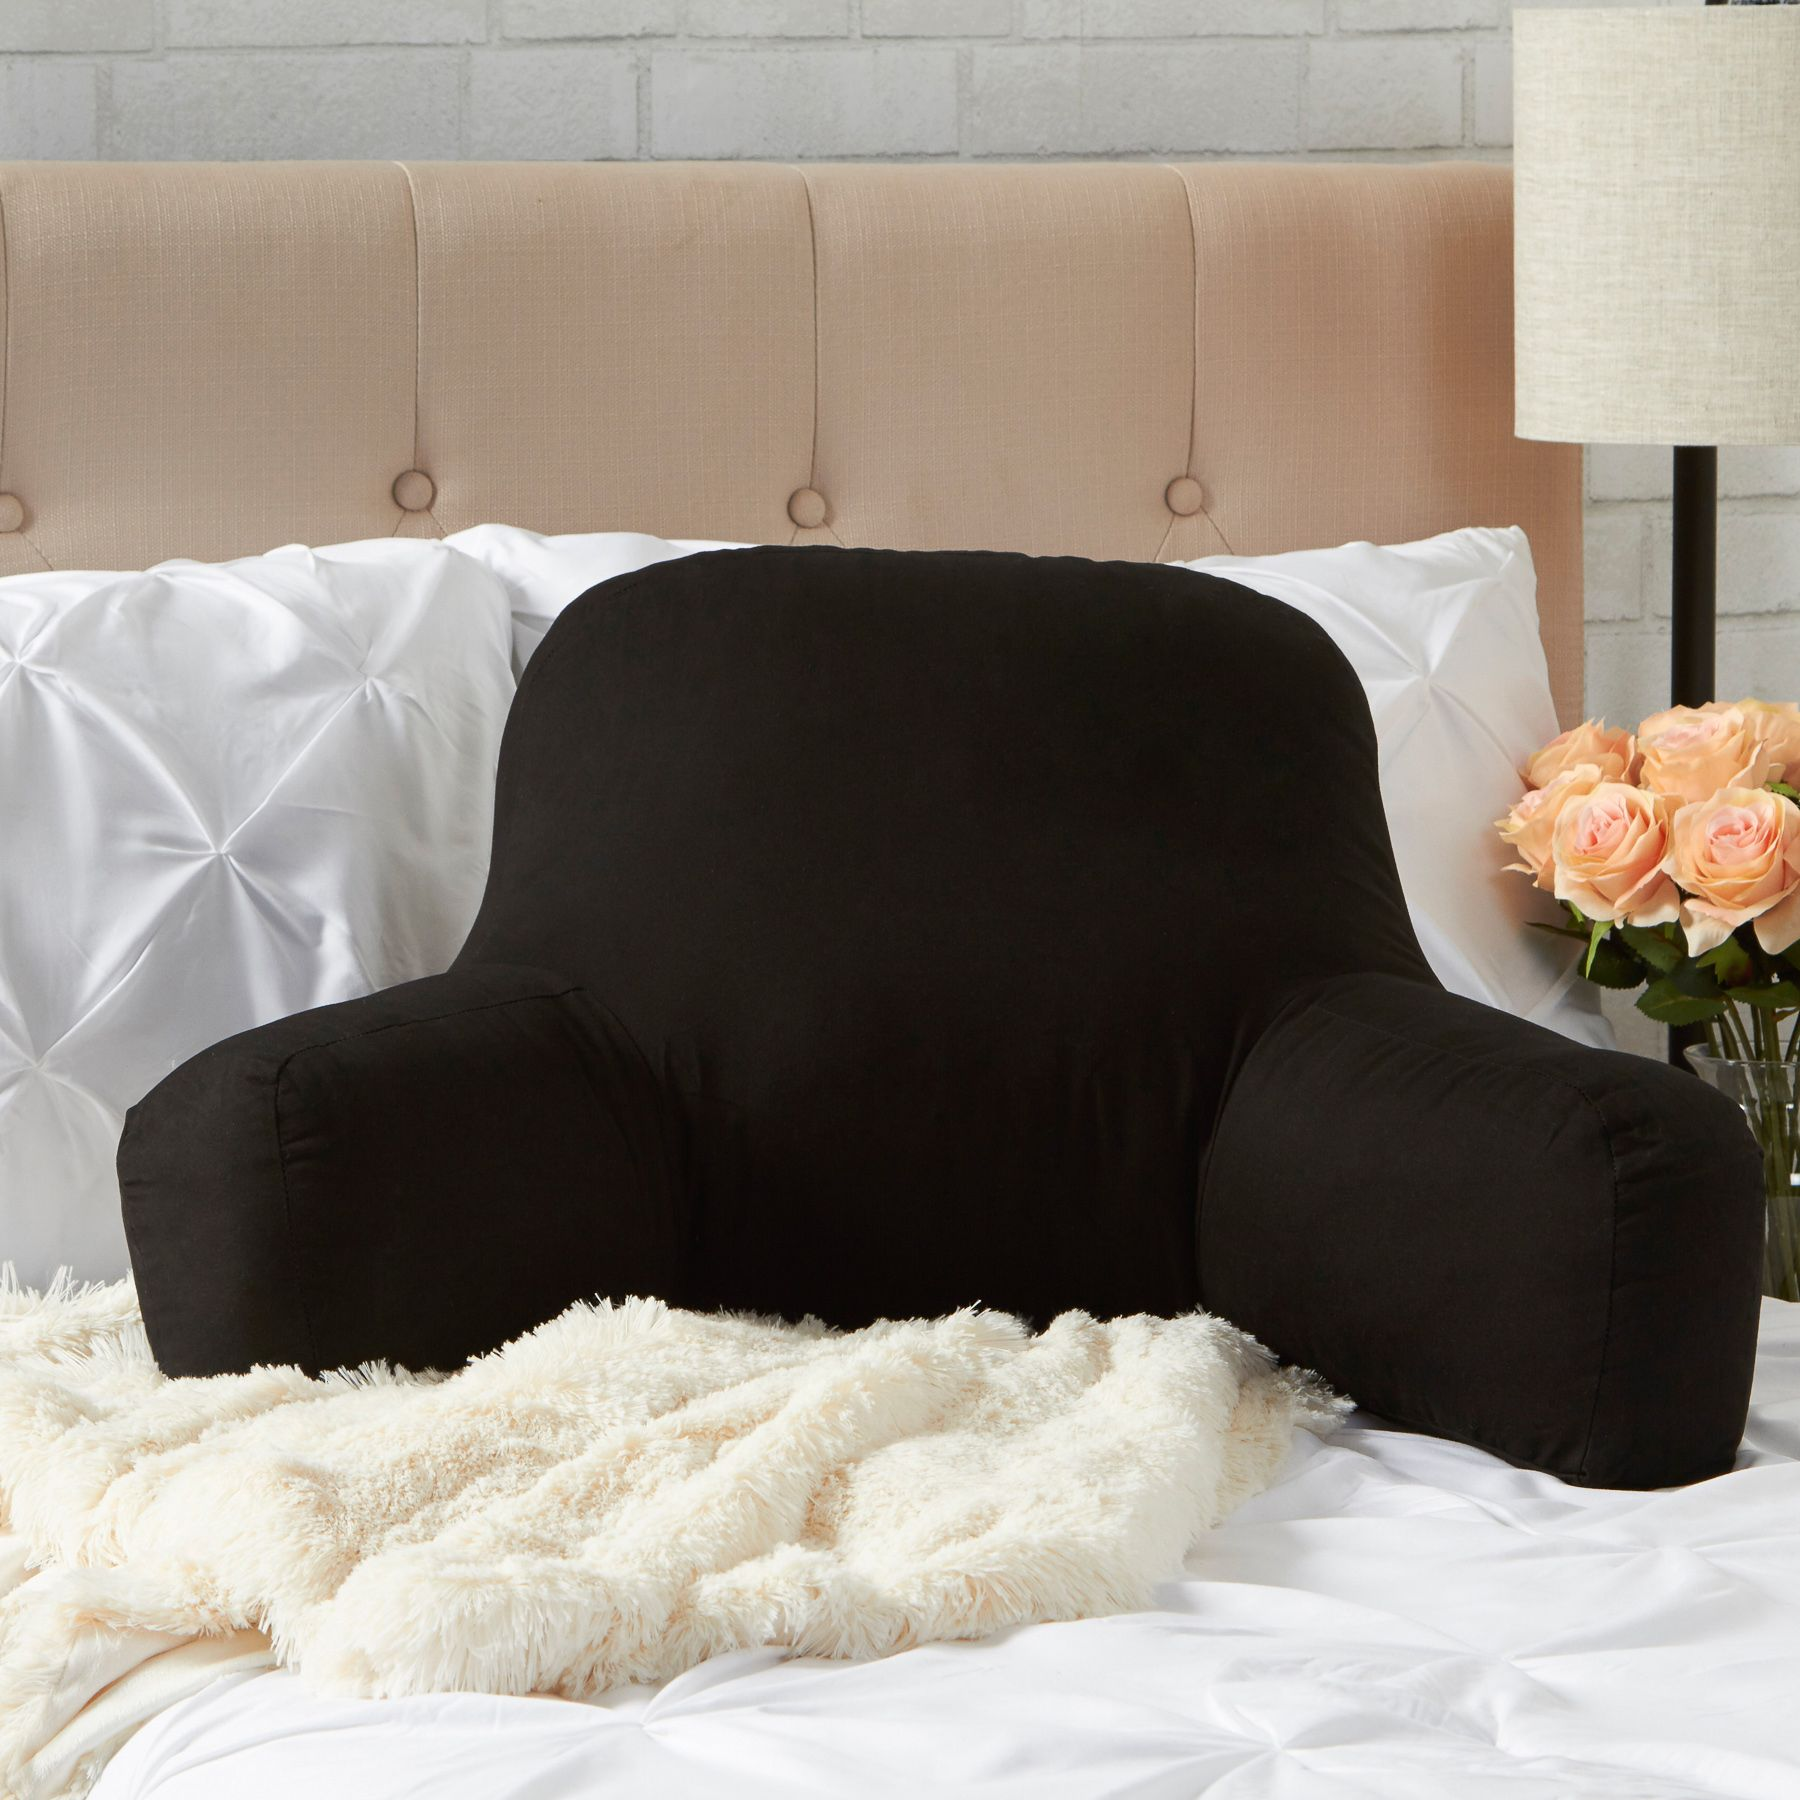 Bed rest pillow black - Greendale Home Fashions Bed Rest Pillow Cotton Duck Black